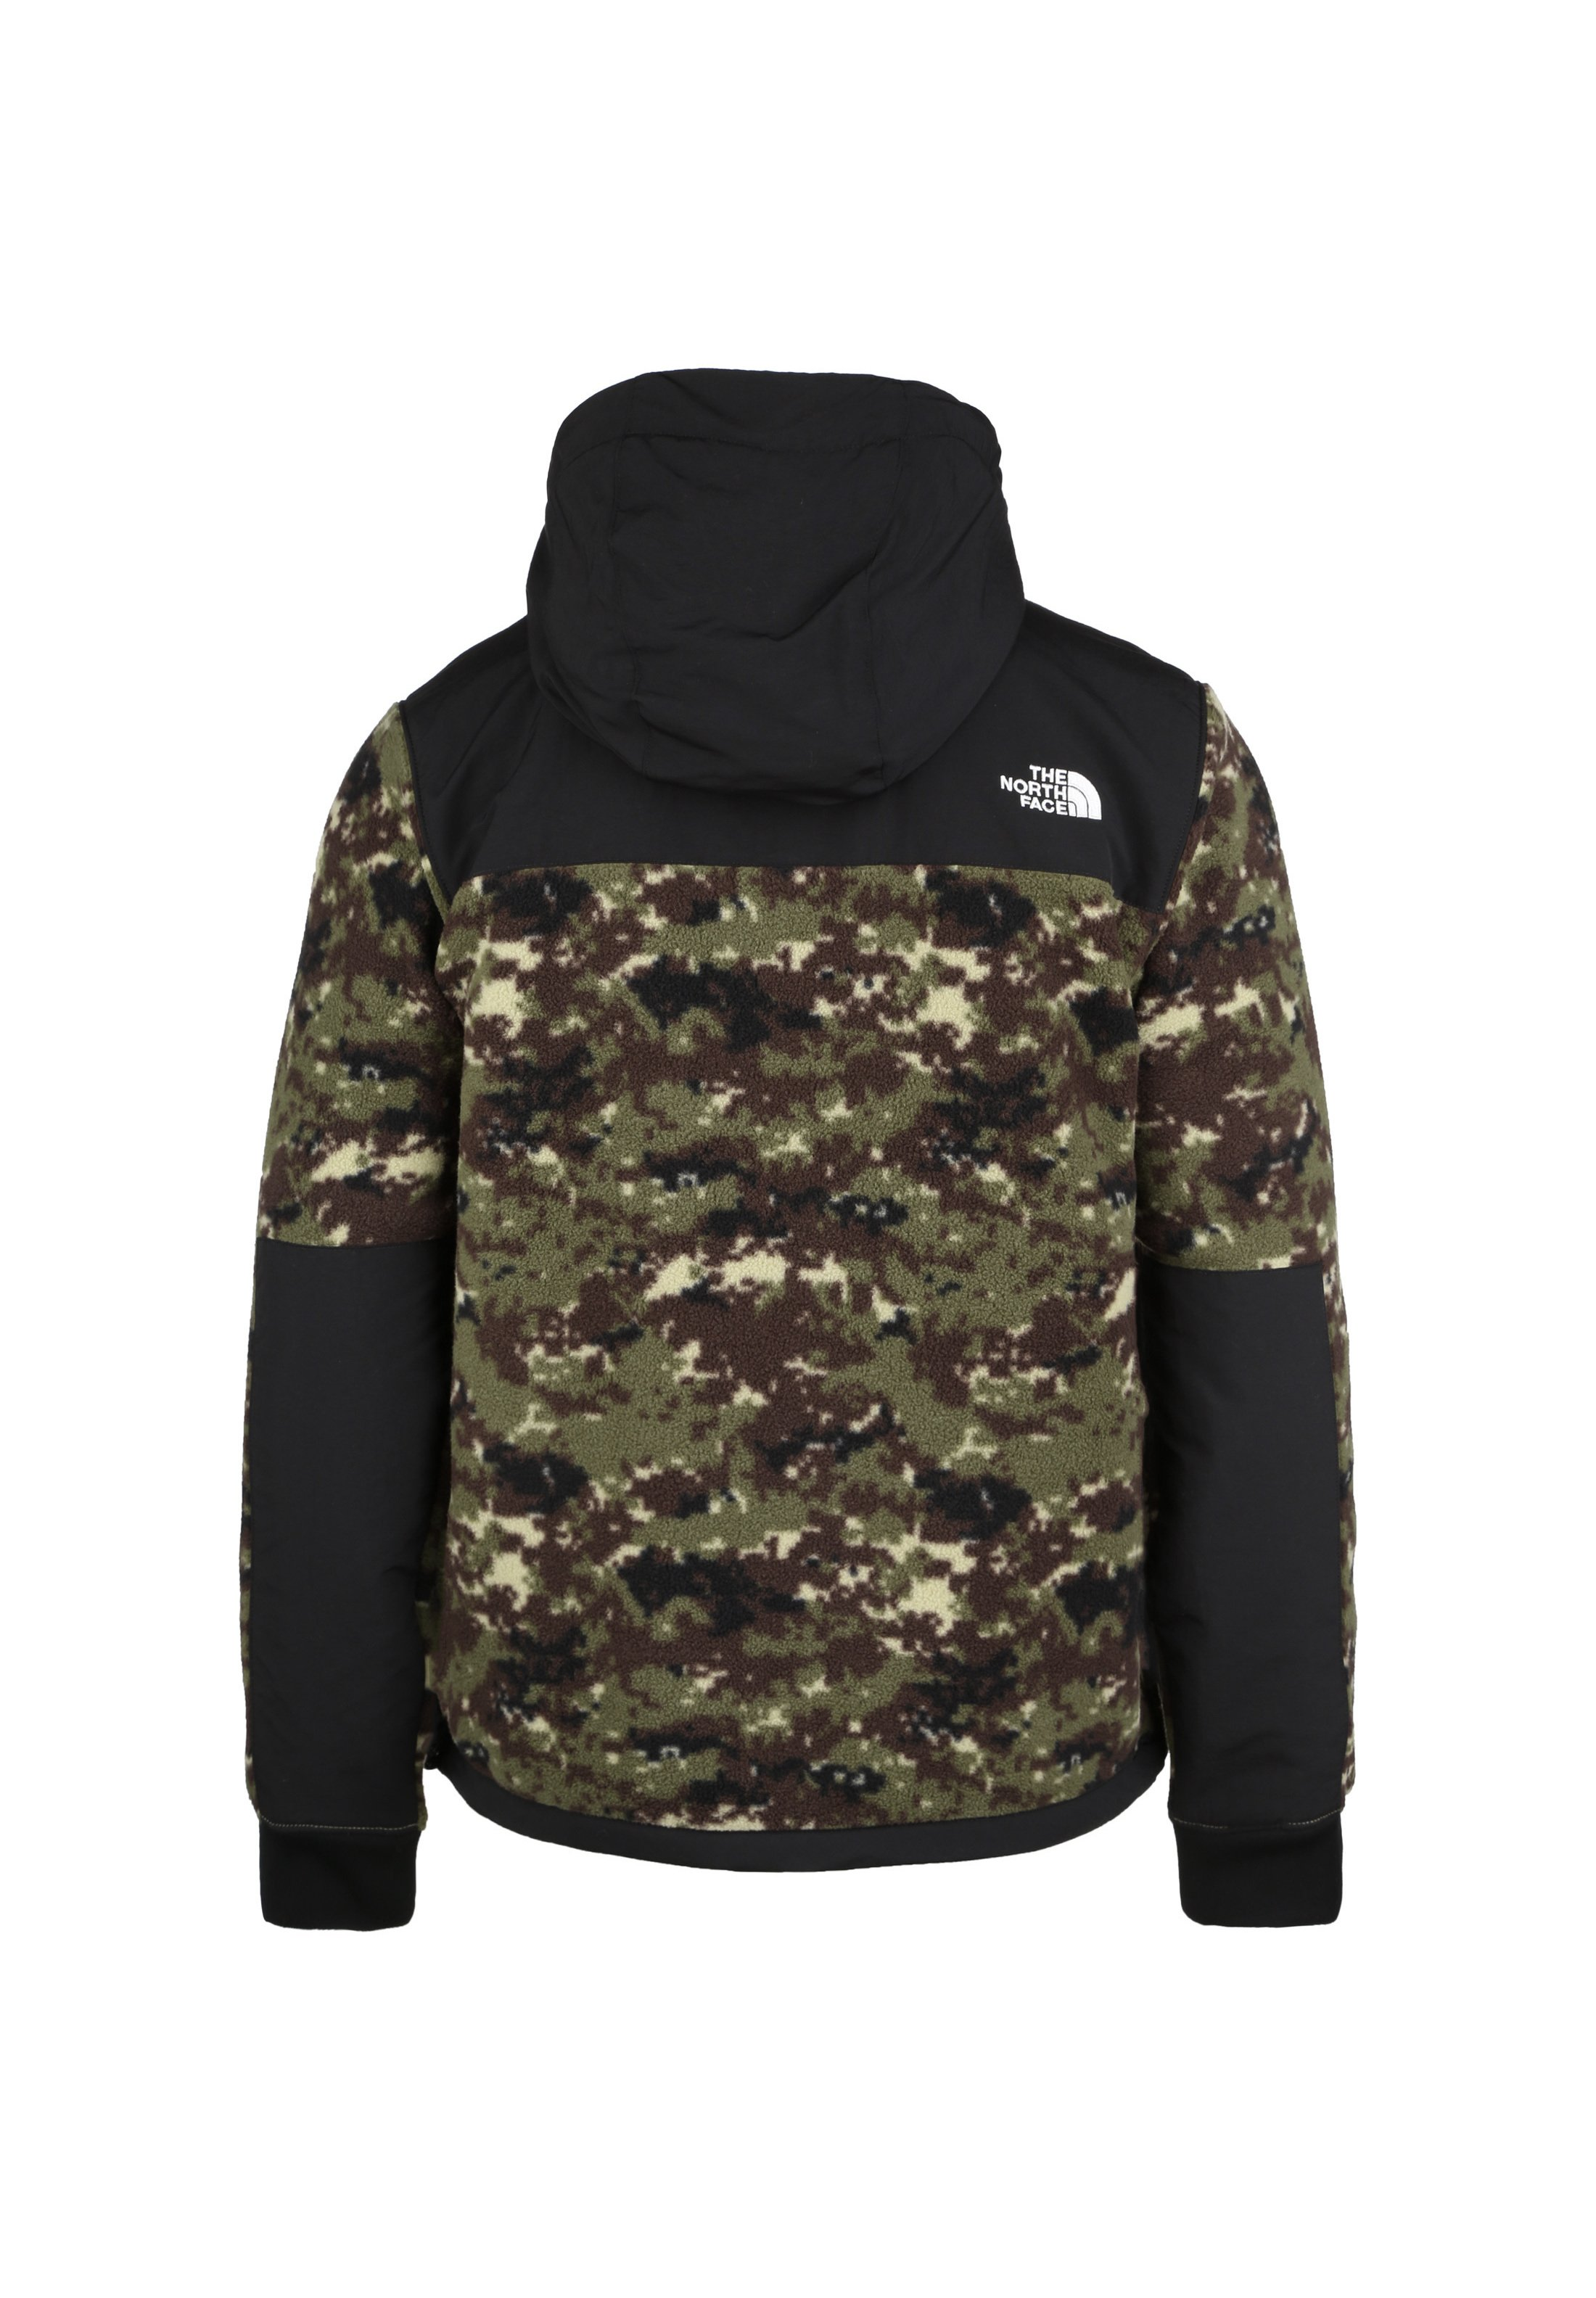 The North Face THE NORTH FACE DENALI ANORAK 2 FLEECEJACKE HERREN - Veste polaire - burnt olive green / digi camo print